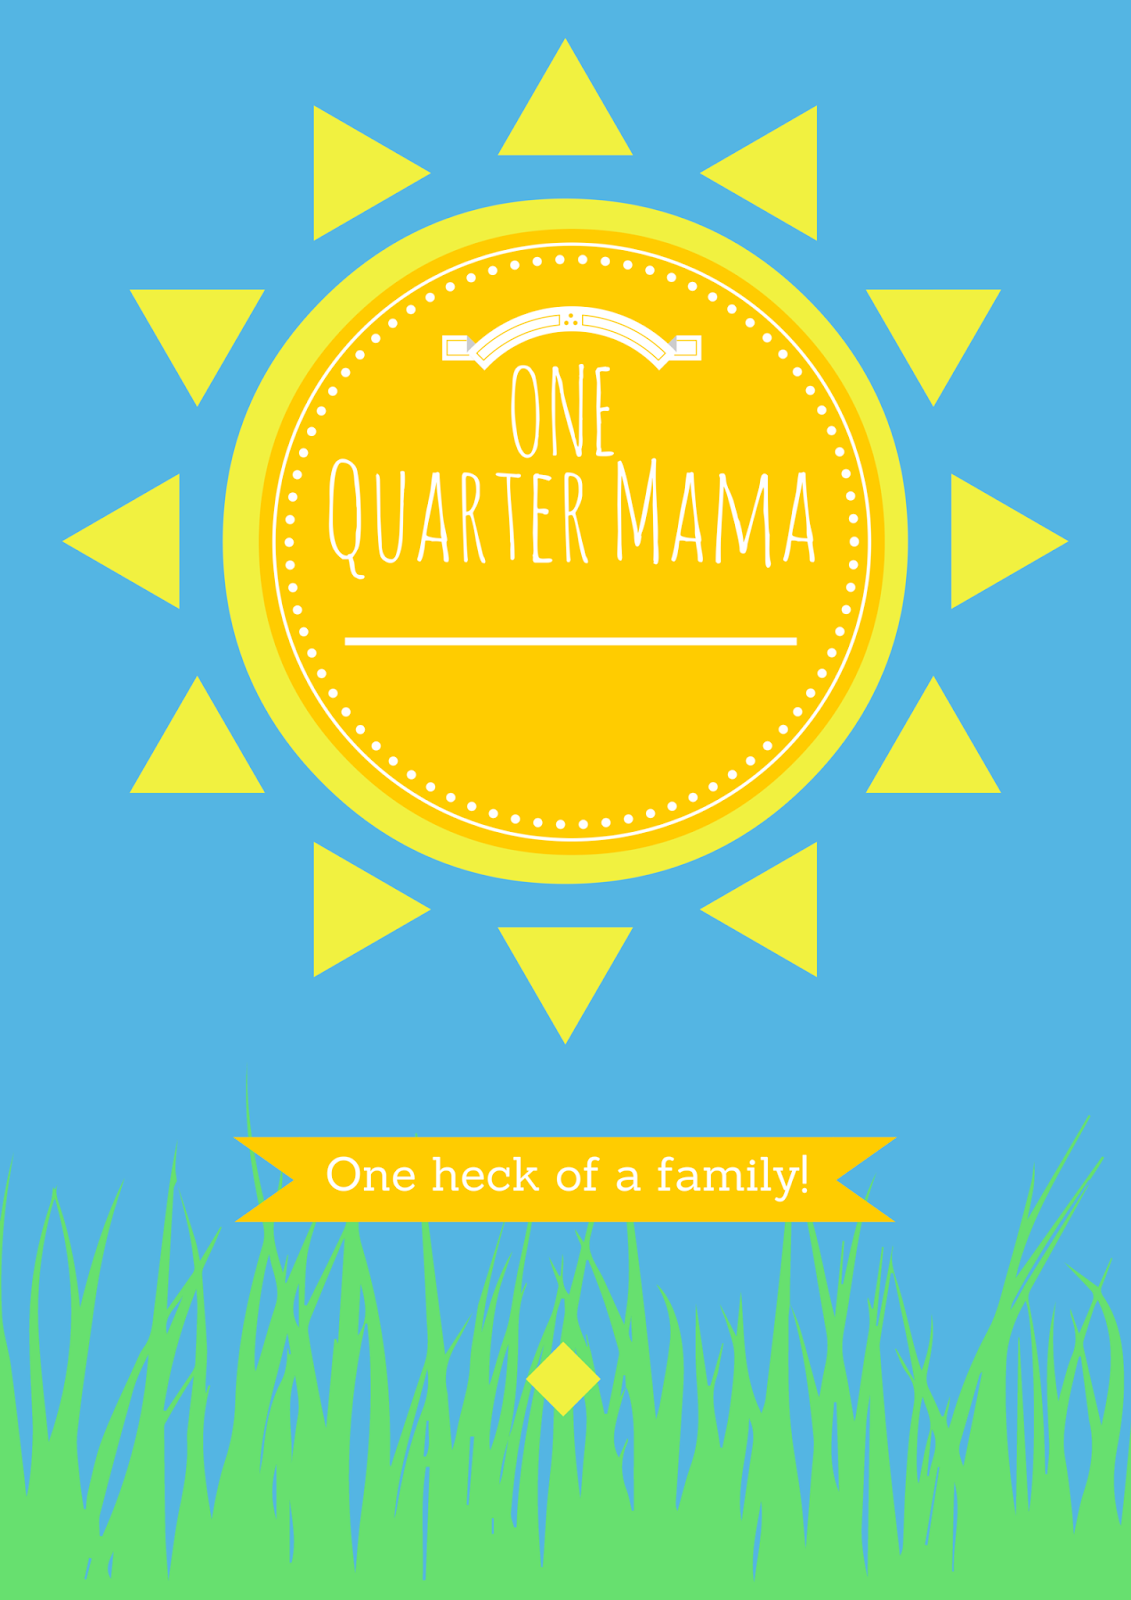 One Quarter Mama Logo Copyright2014 on onequartermama.ca